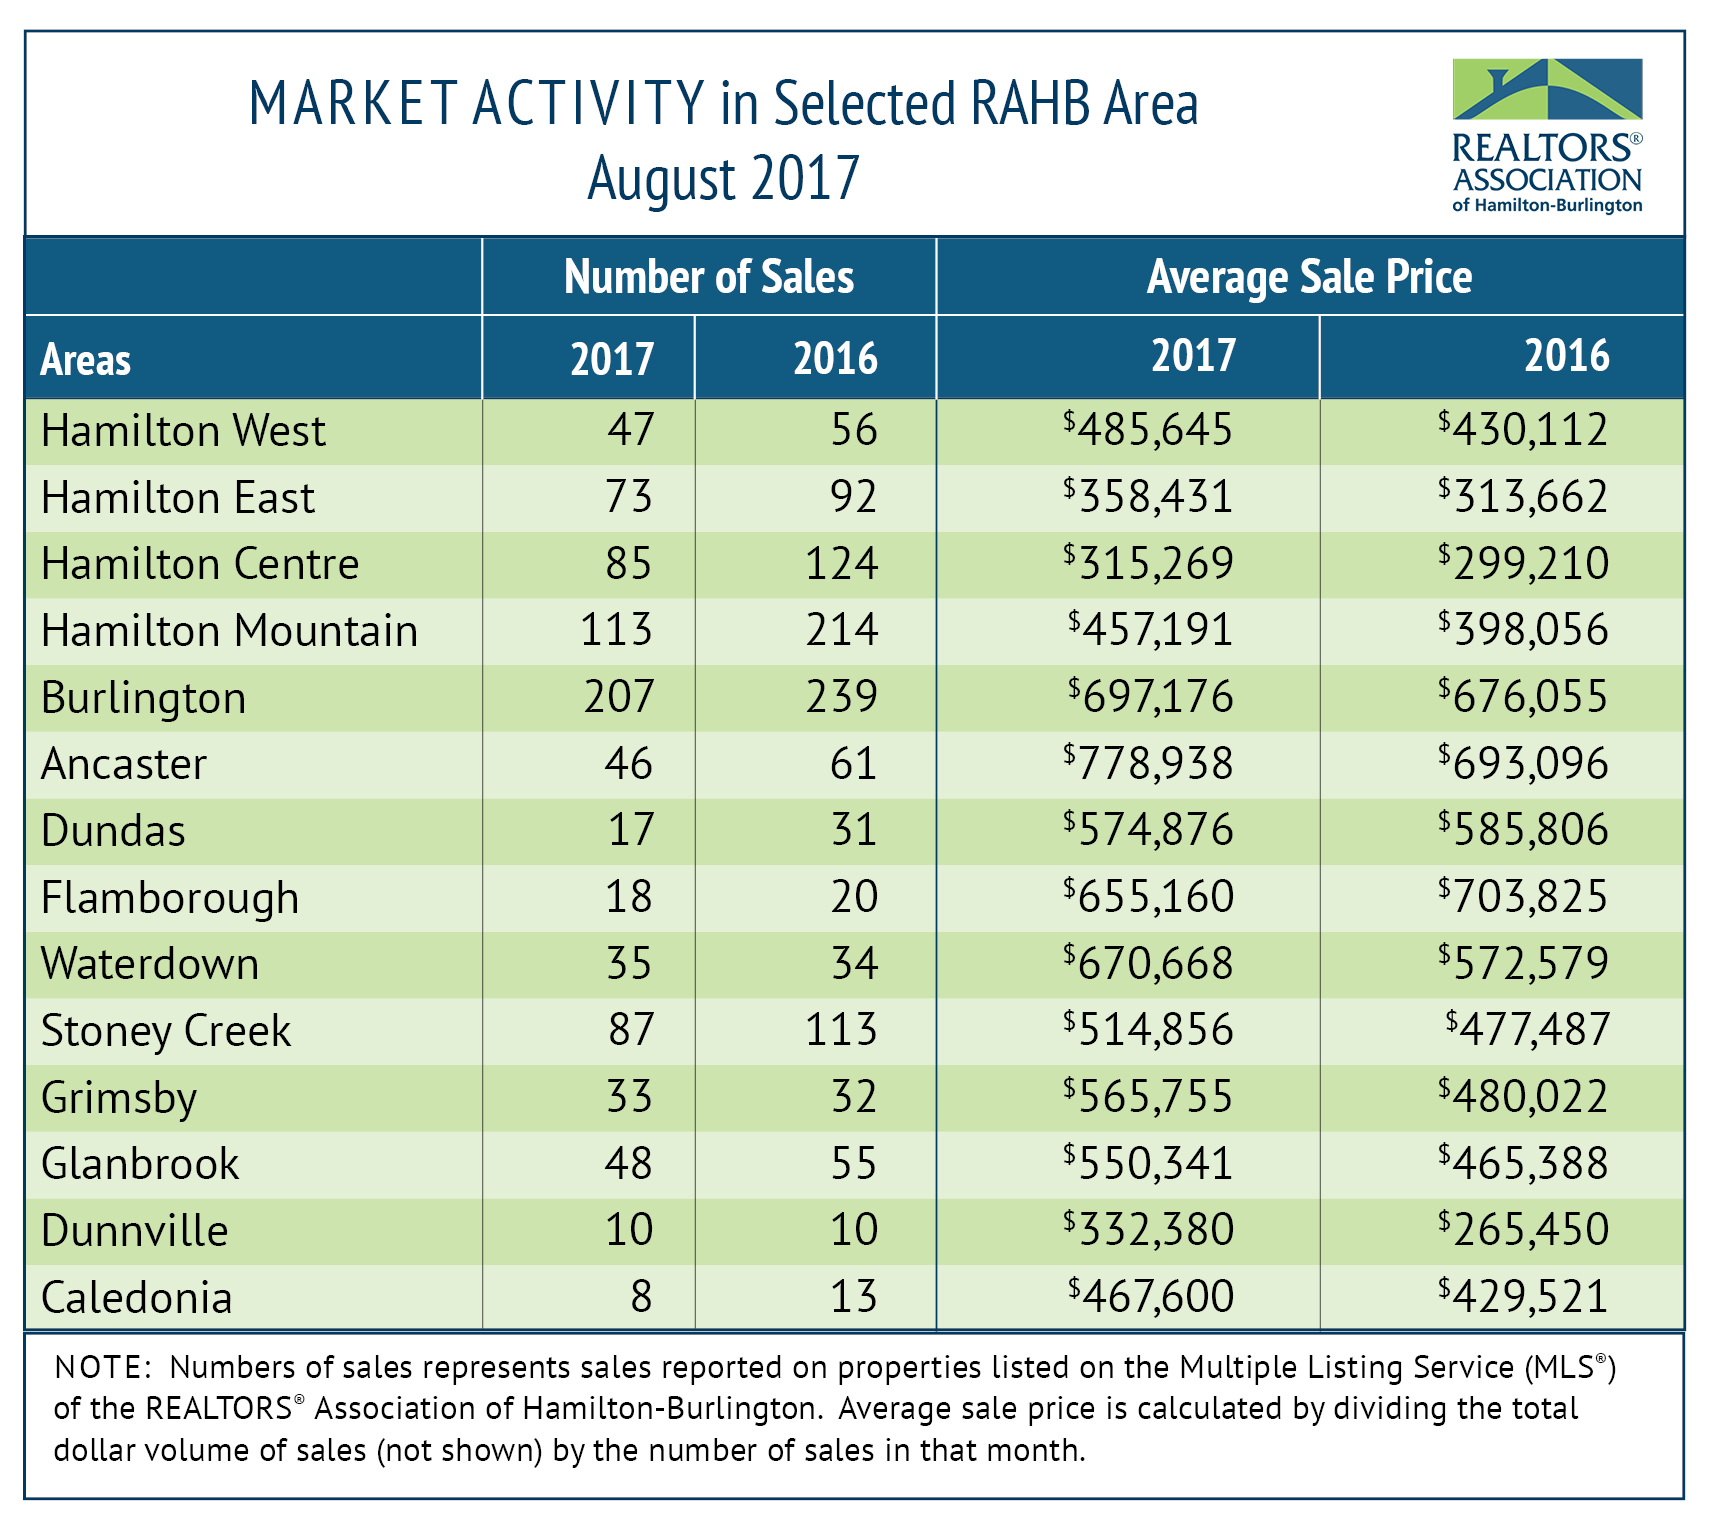 MORE BALANCE IN AUGUST MARKET